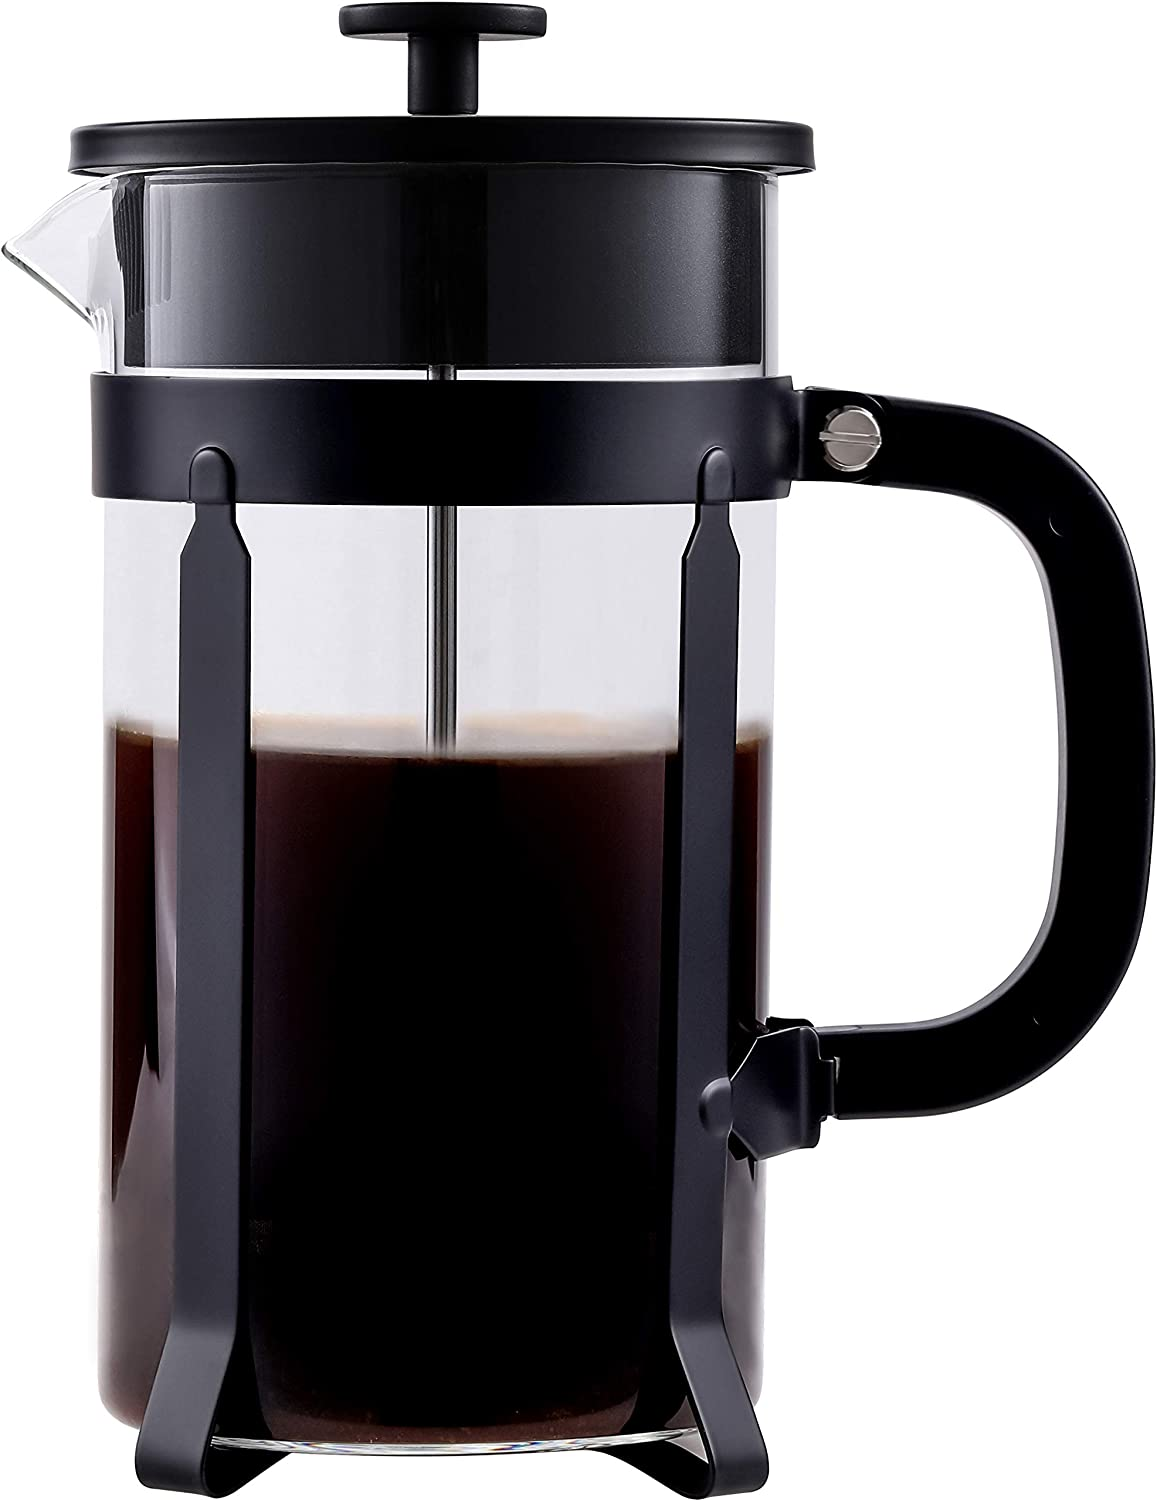 34 Oz French Press Coffee Maker With Effective Filtration System,French Press Borosilicate Glass,French Press Stainless Steel Glass,Glass Stainless Steel Coffee Maker French Press